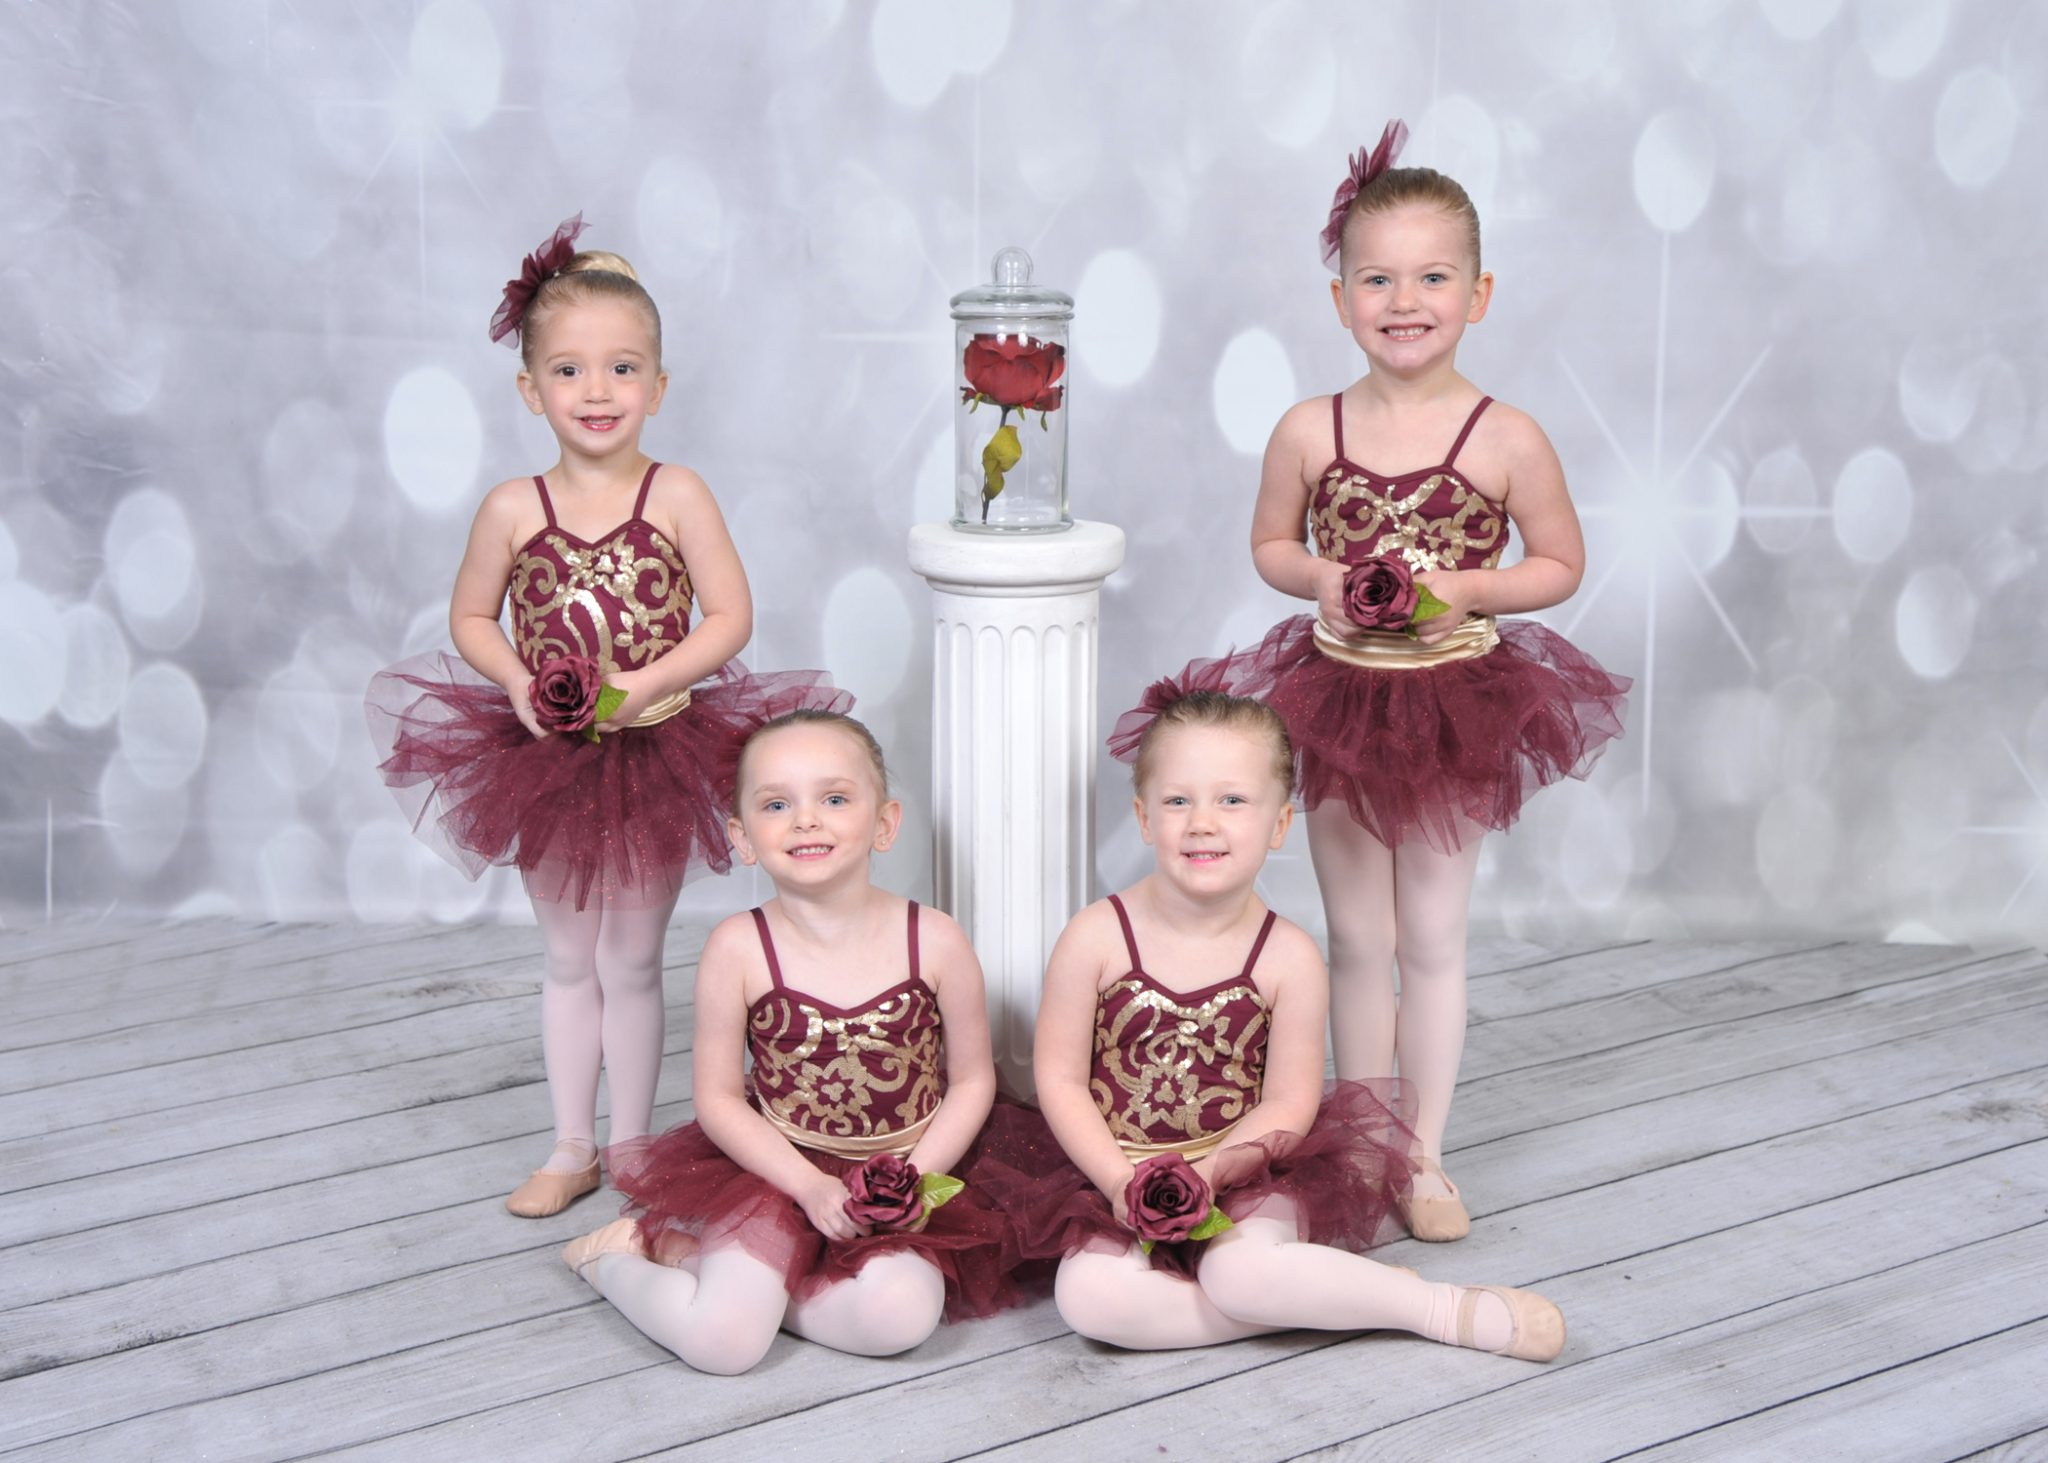 Ballerinas with roses